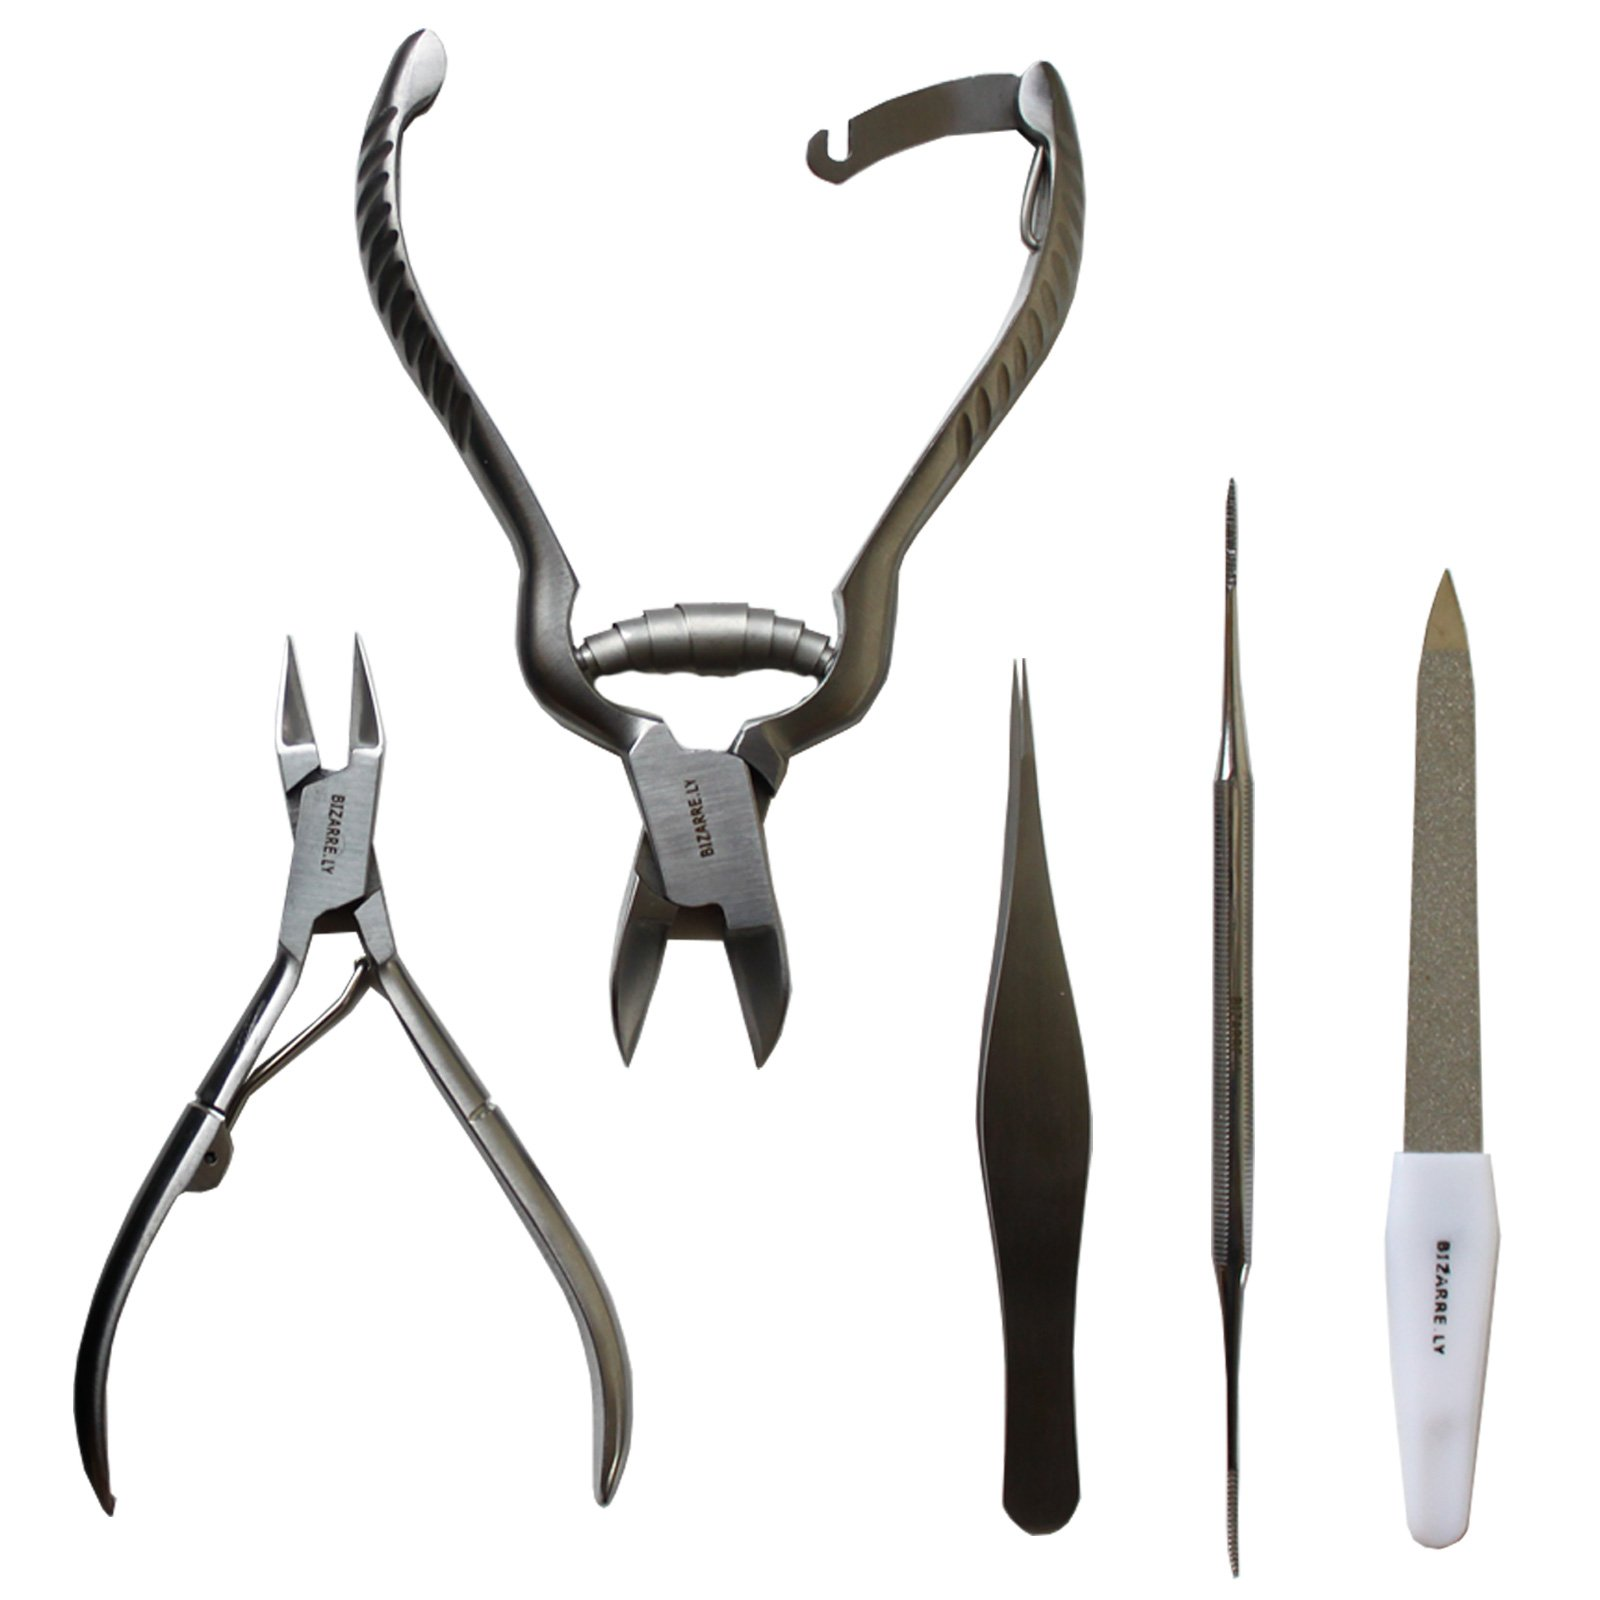 MASSIVE BIZARRE.LY Professional 5 Piece Ingrown TOENAIL KIT - Pedicure Tools to EASILY FIX and PREVENT Sore, Painful Nails - FILE, LIFTER, 2X CLIPPERS, PRECISION TWEEZERS - With PORTABLE LEATHER POUCH by Bizarre.ly (Image #3)